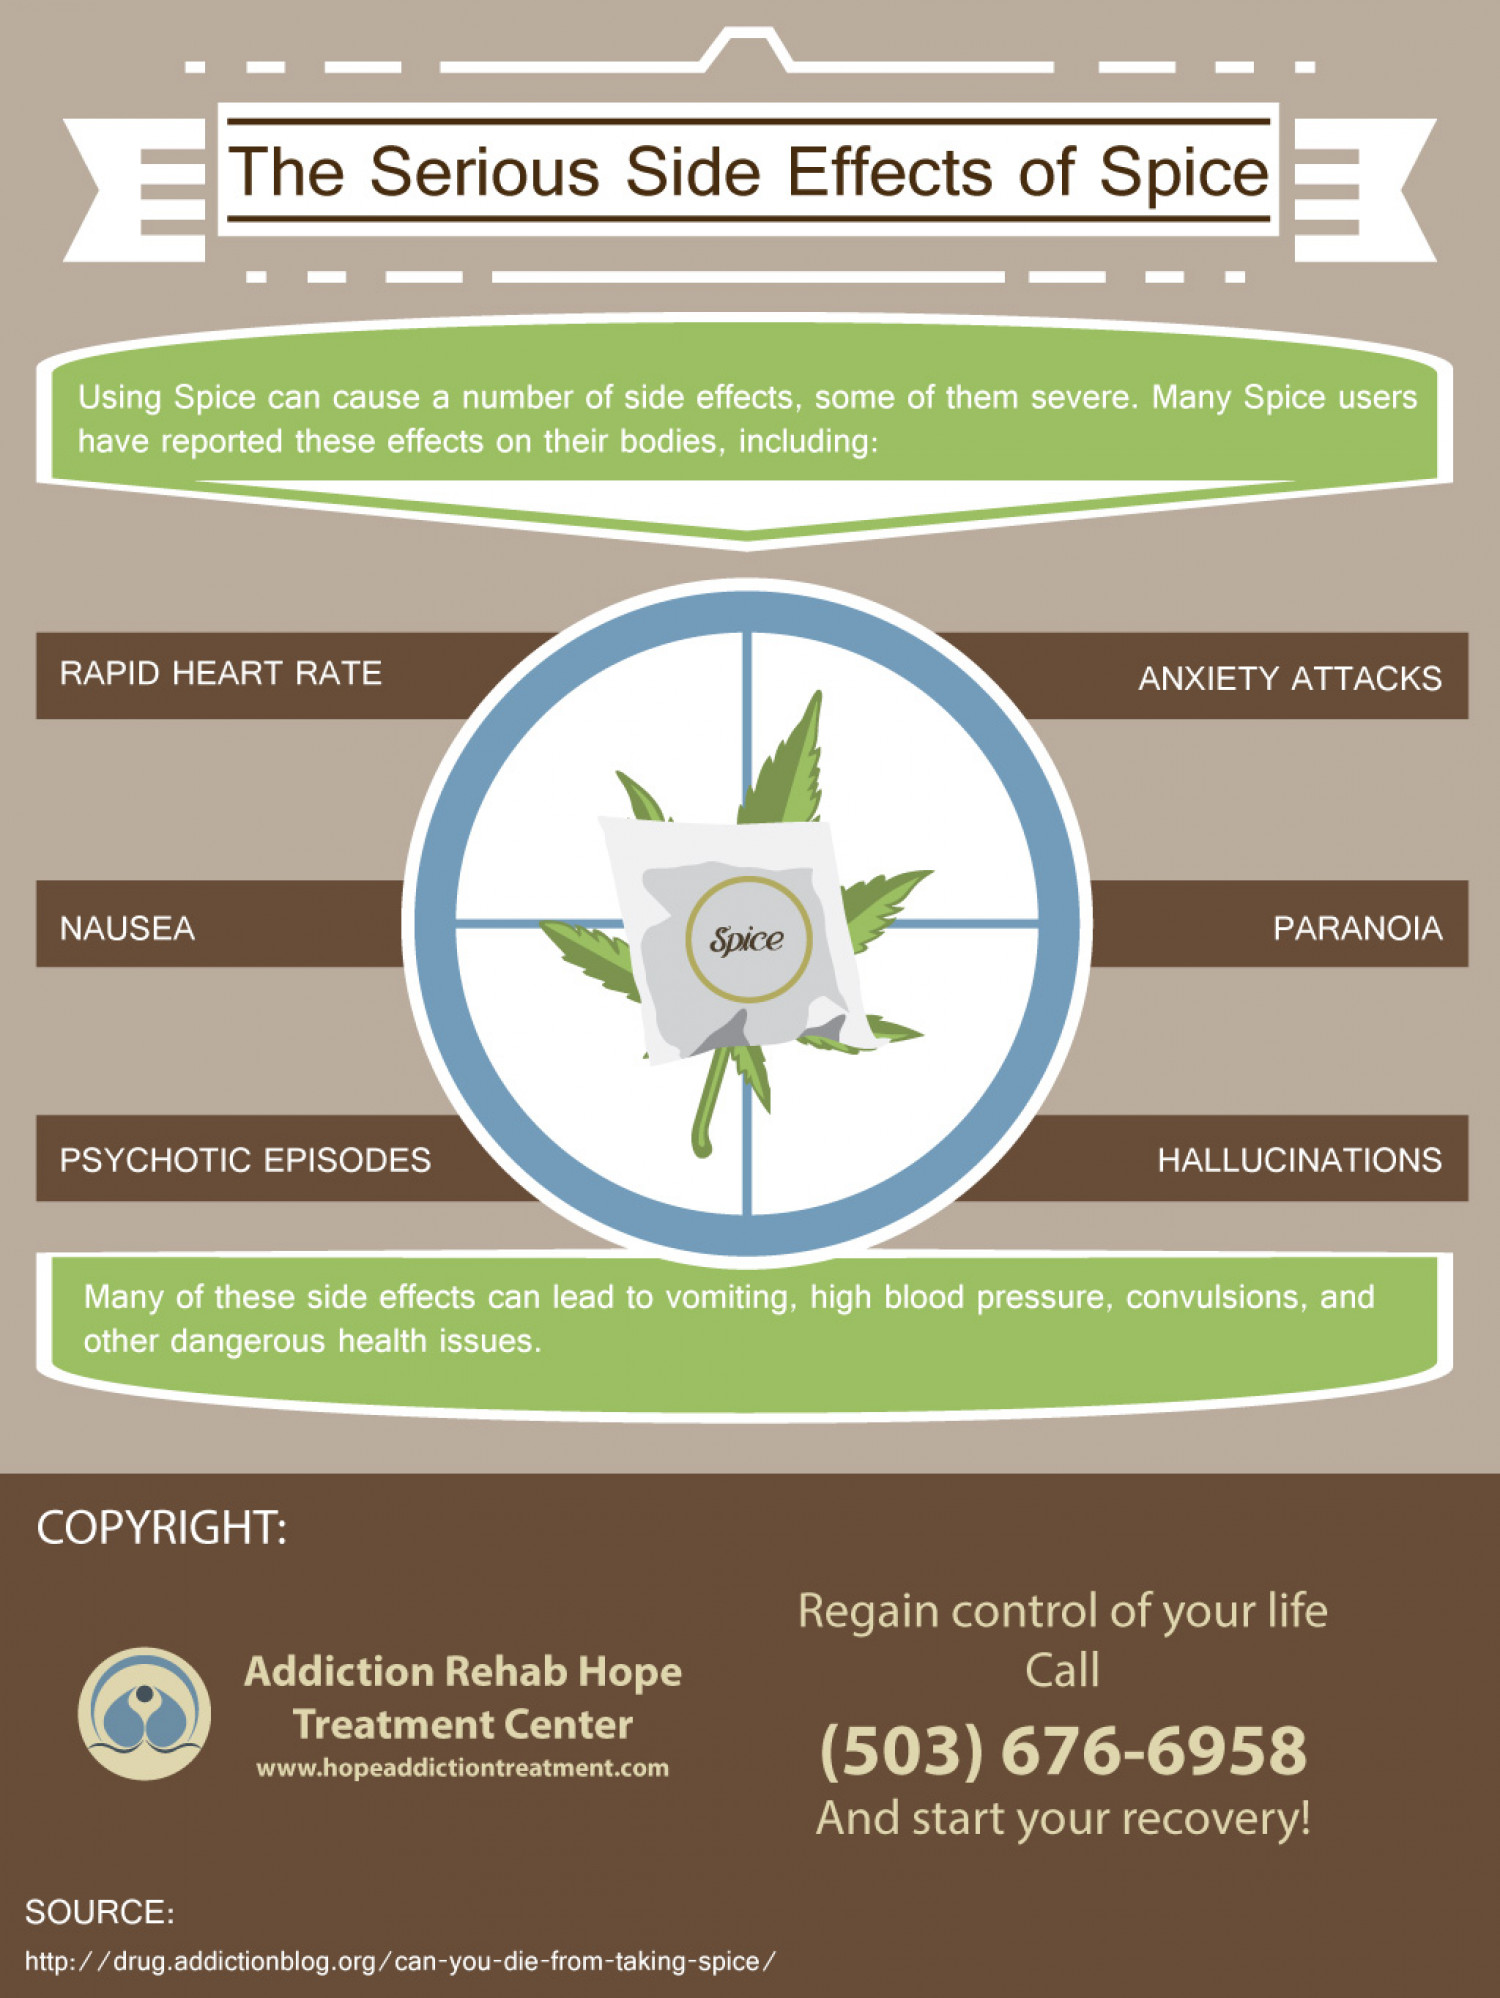 The Serious Side Effects of Spice | Addiction Rehab Hope Treatment Center Infographic